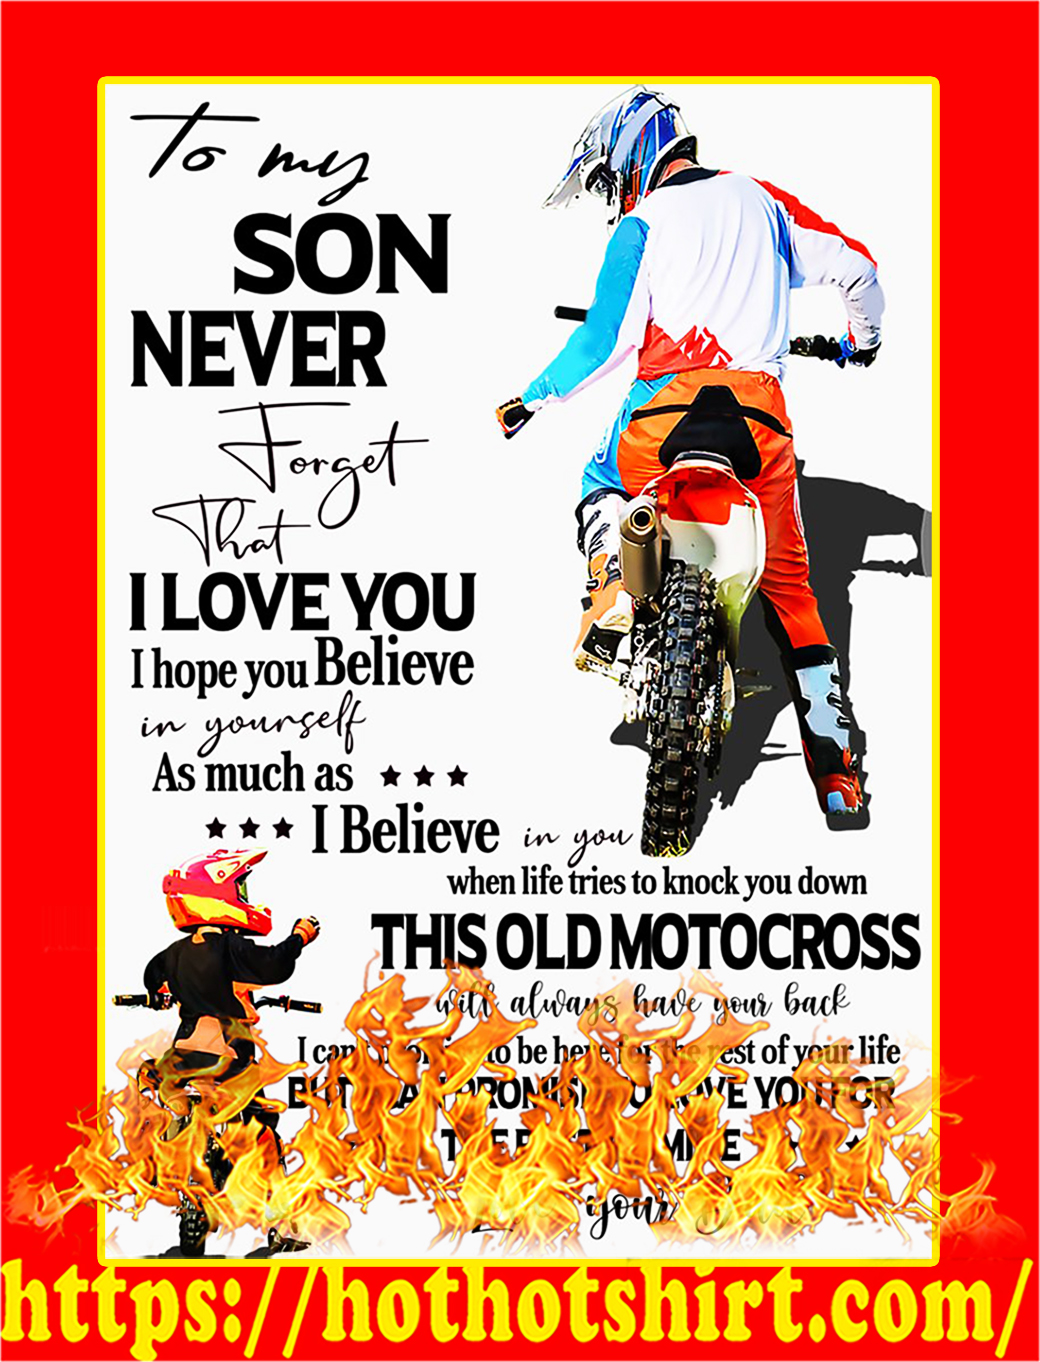 To My Son Your Dad Motocross Poster - A3